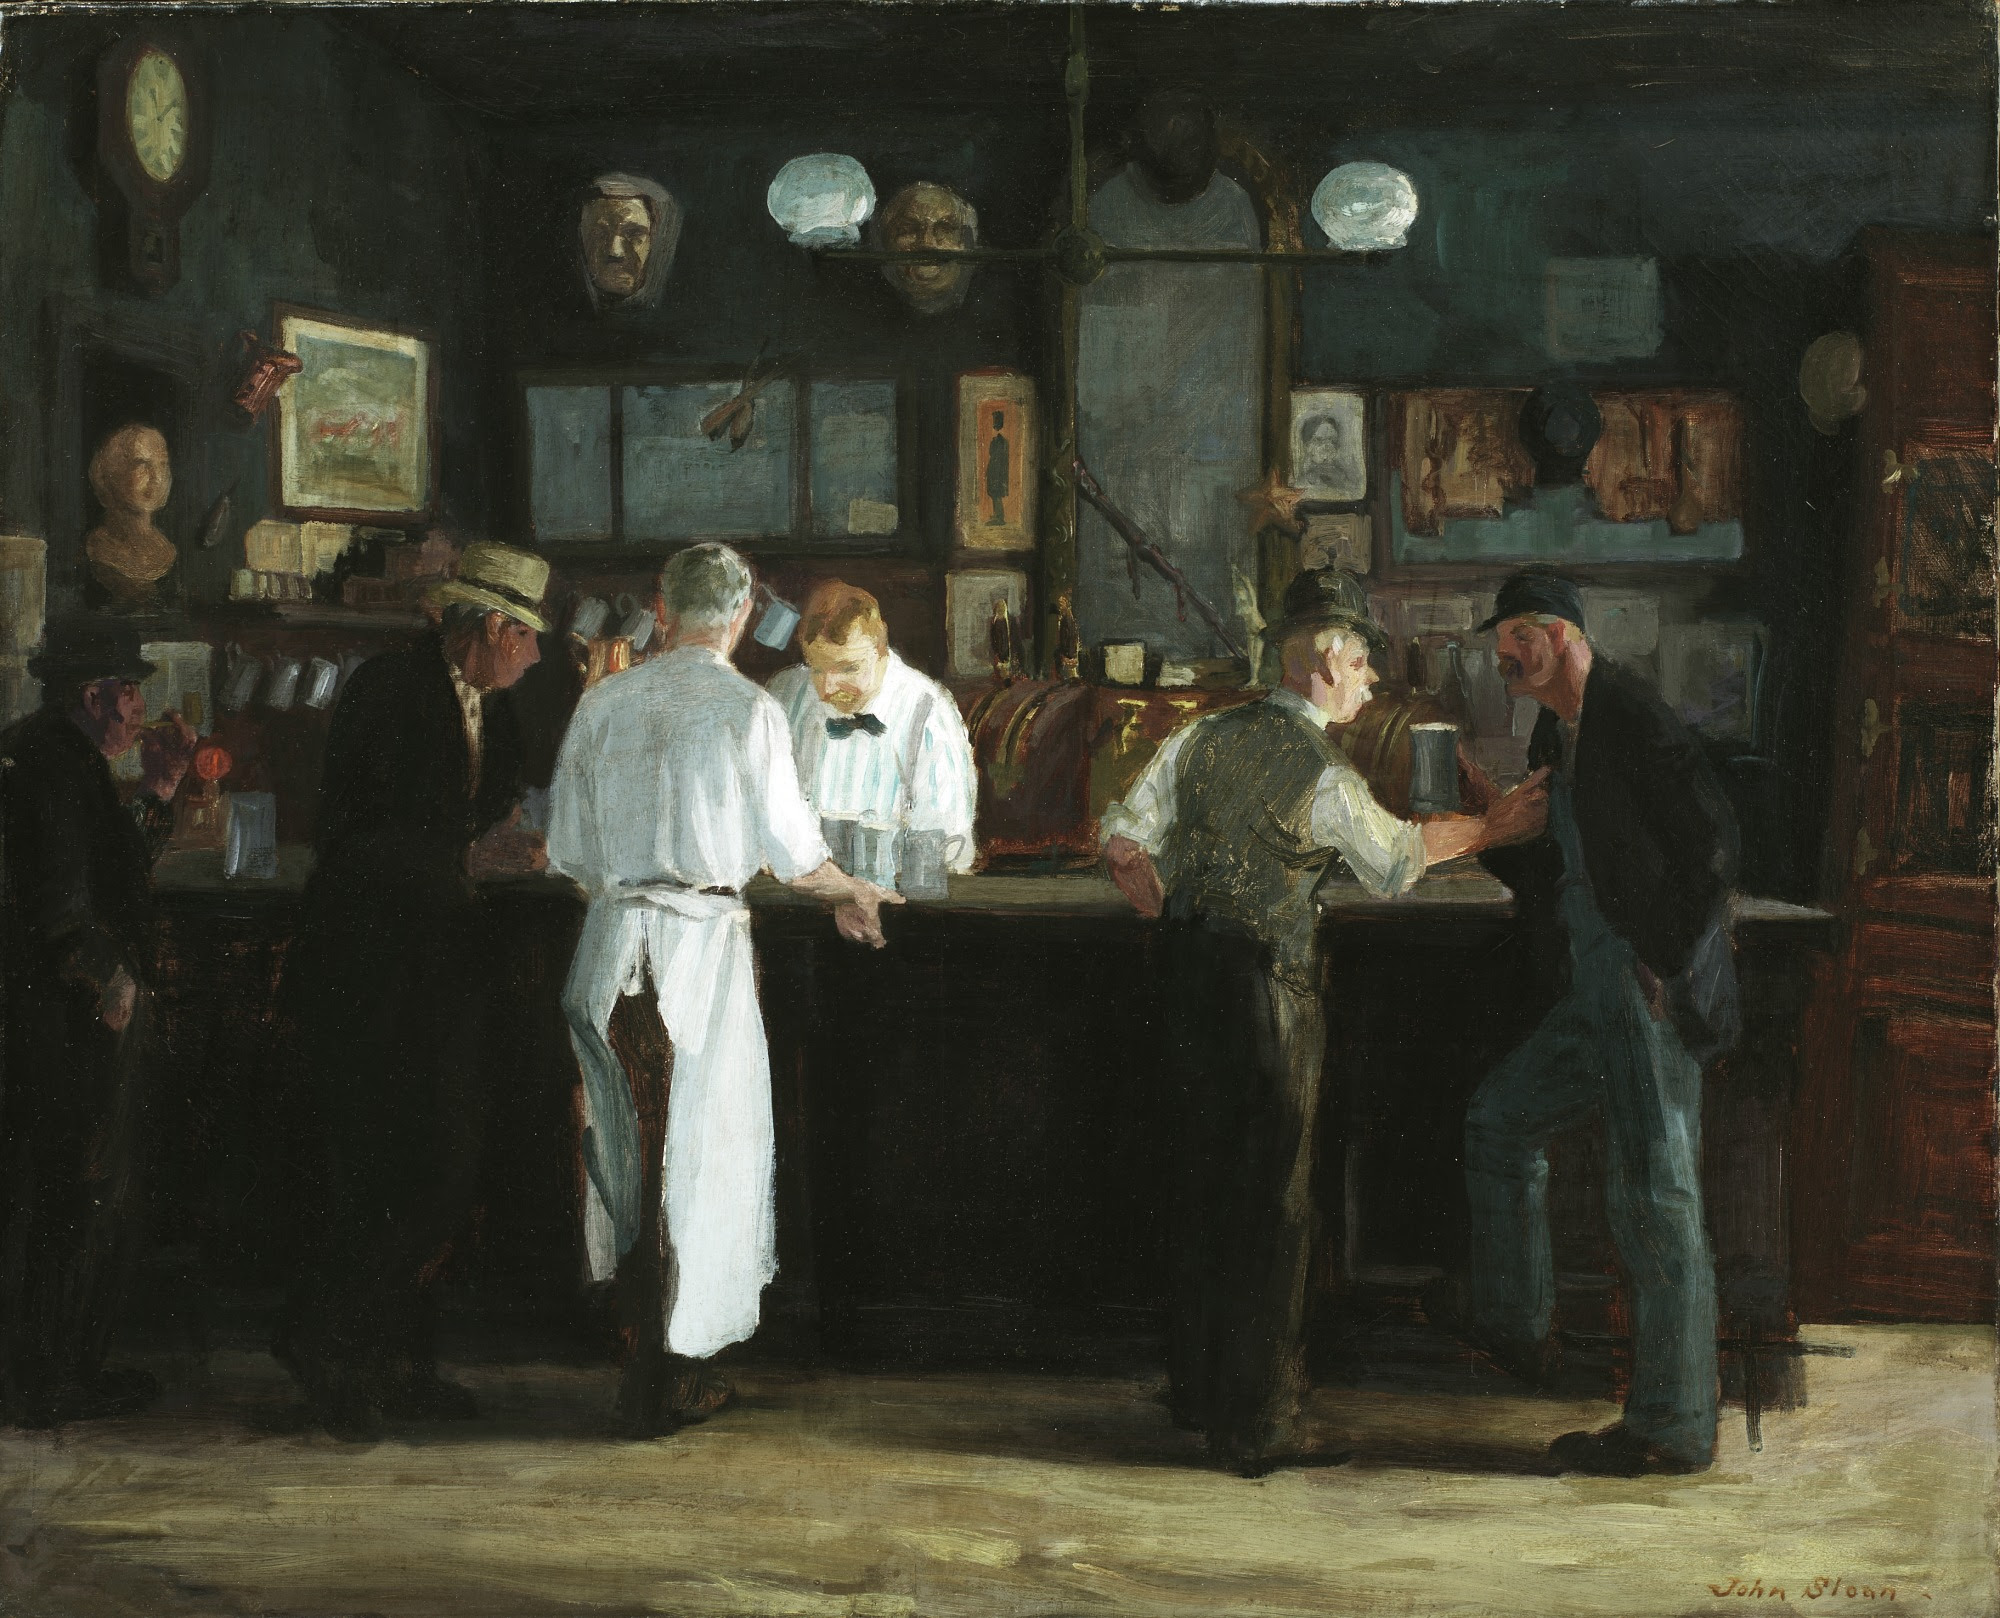 http://upload.wikimedia.org/wikipedia/commons/a/a1/McSorley%27s_Bar_1912_John_Sloan.jpg